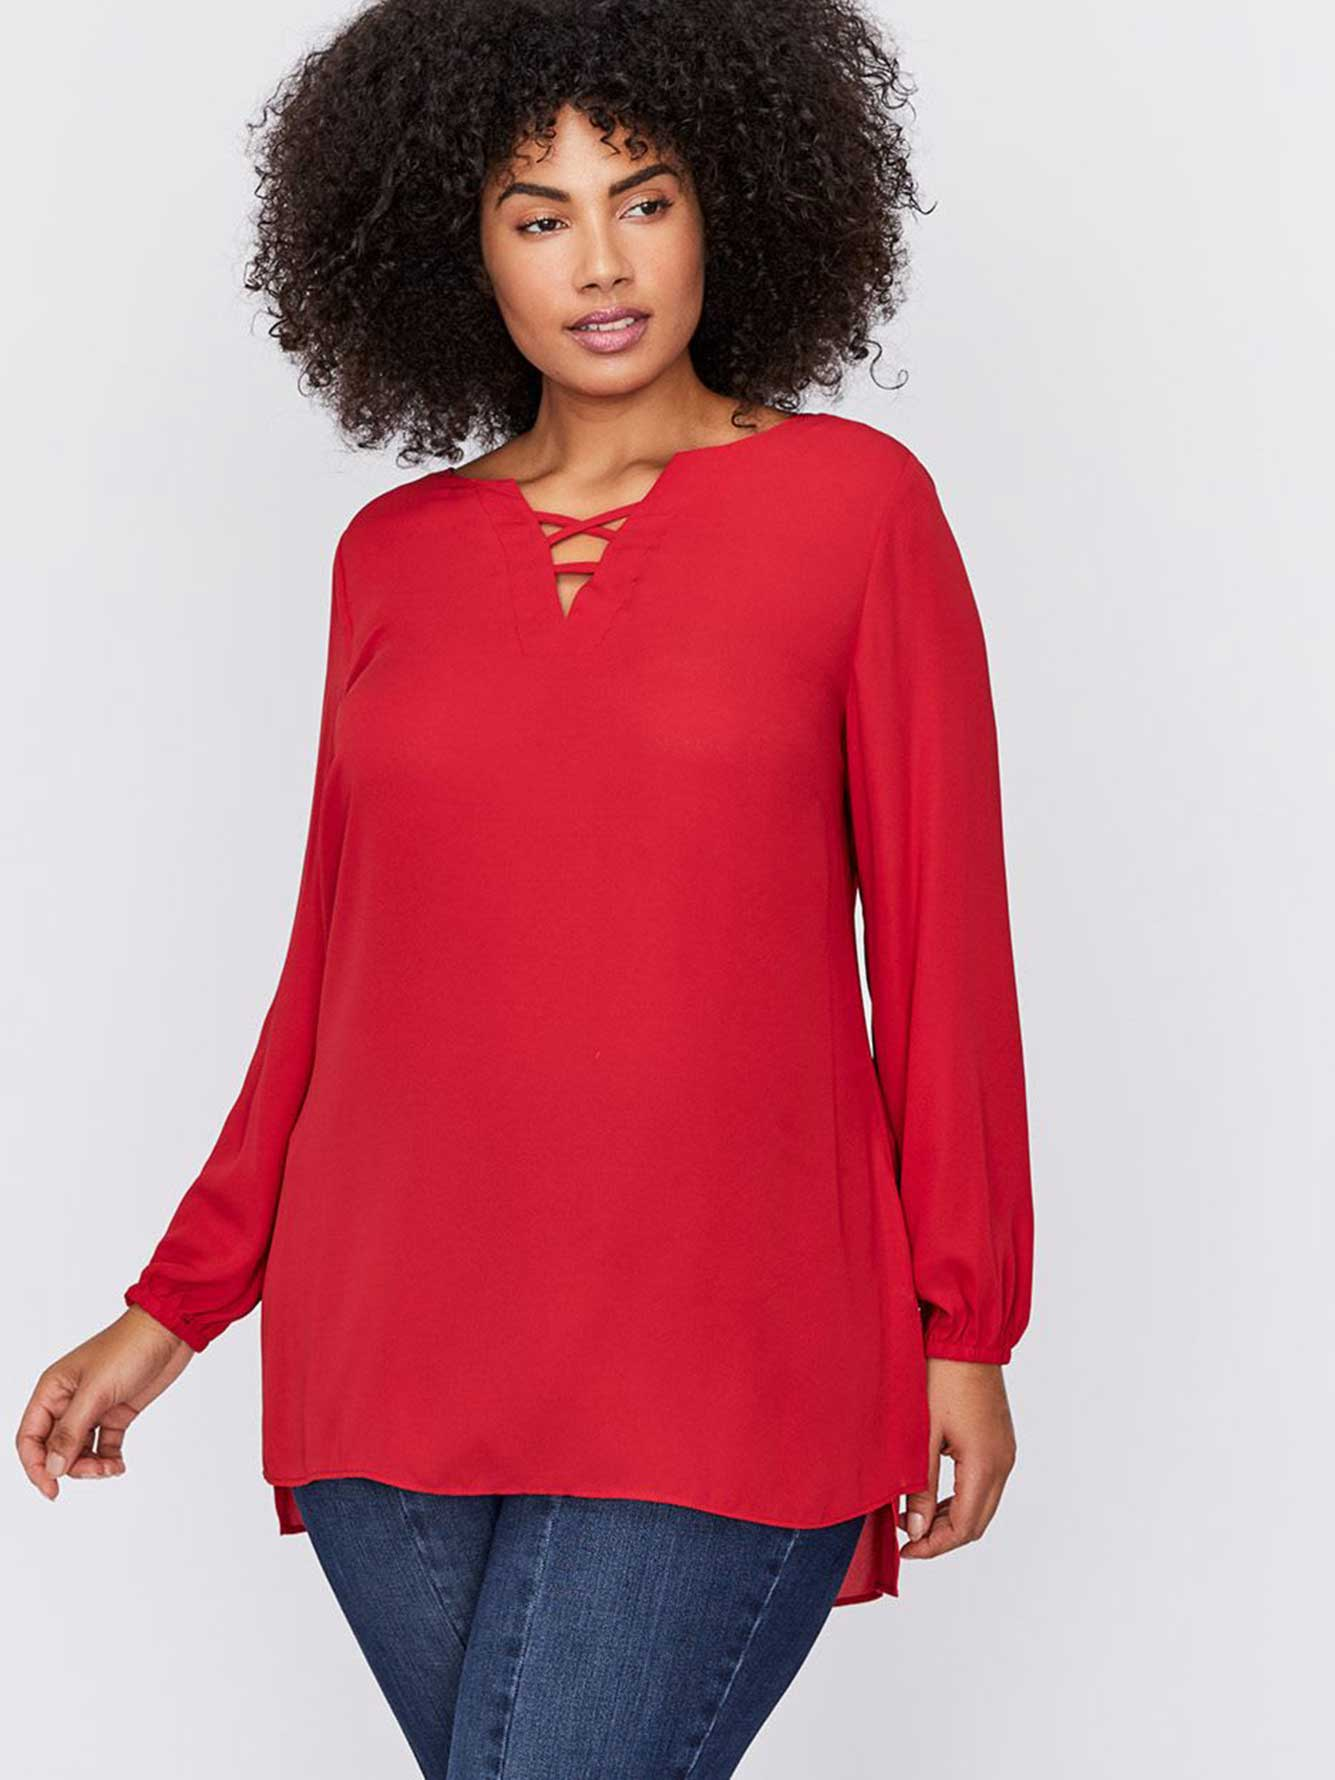 ac8e2279788 Puffy Sleeve Tunic Blouse with Lacing Details - Michel Studio ...